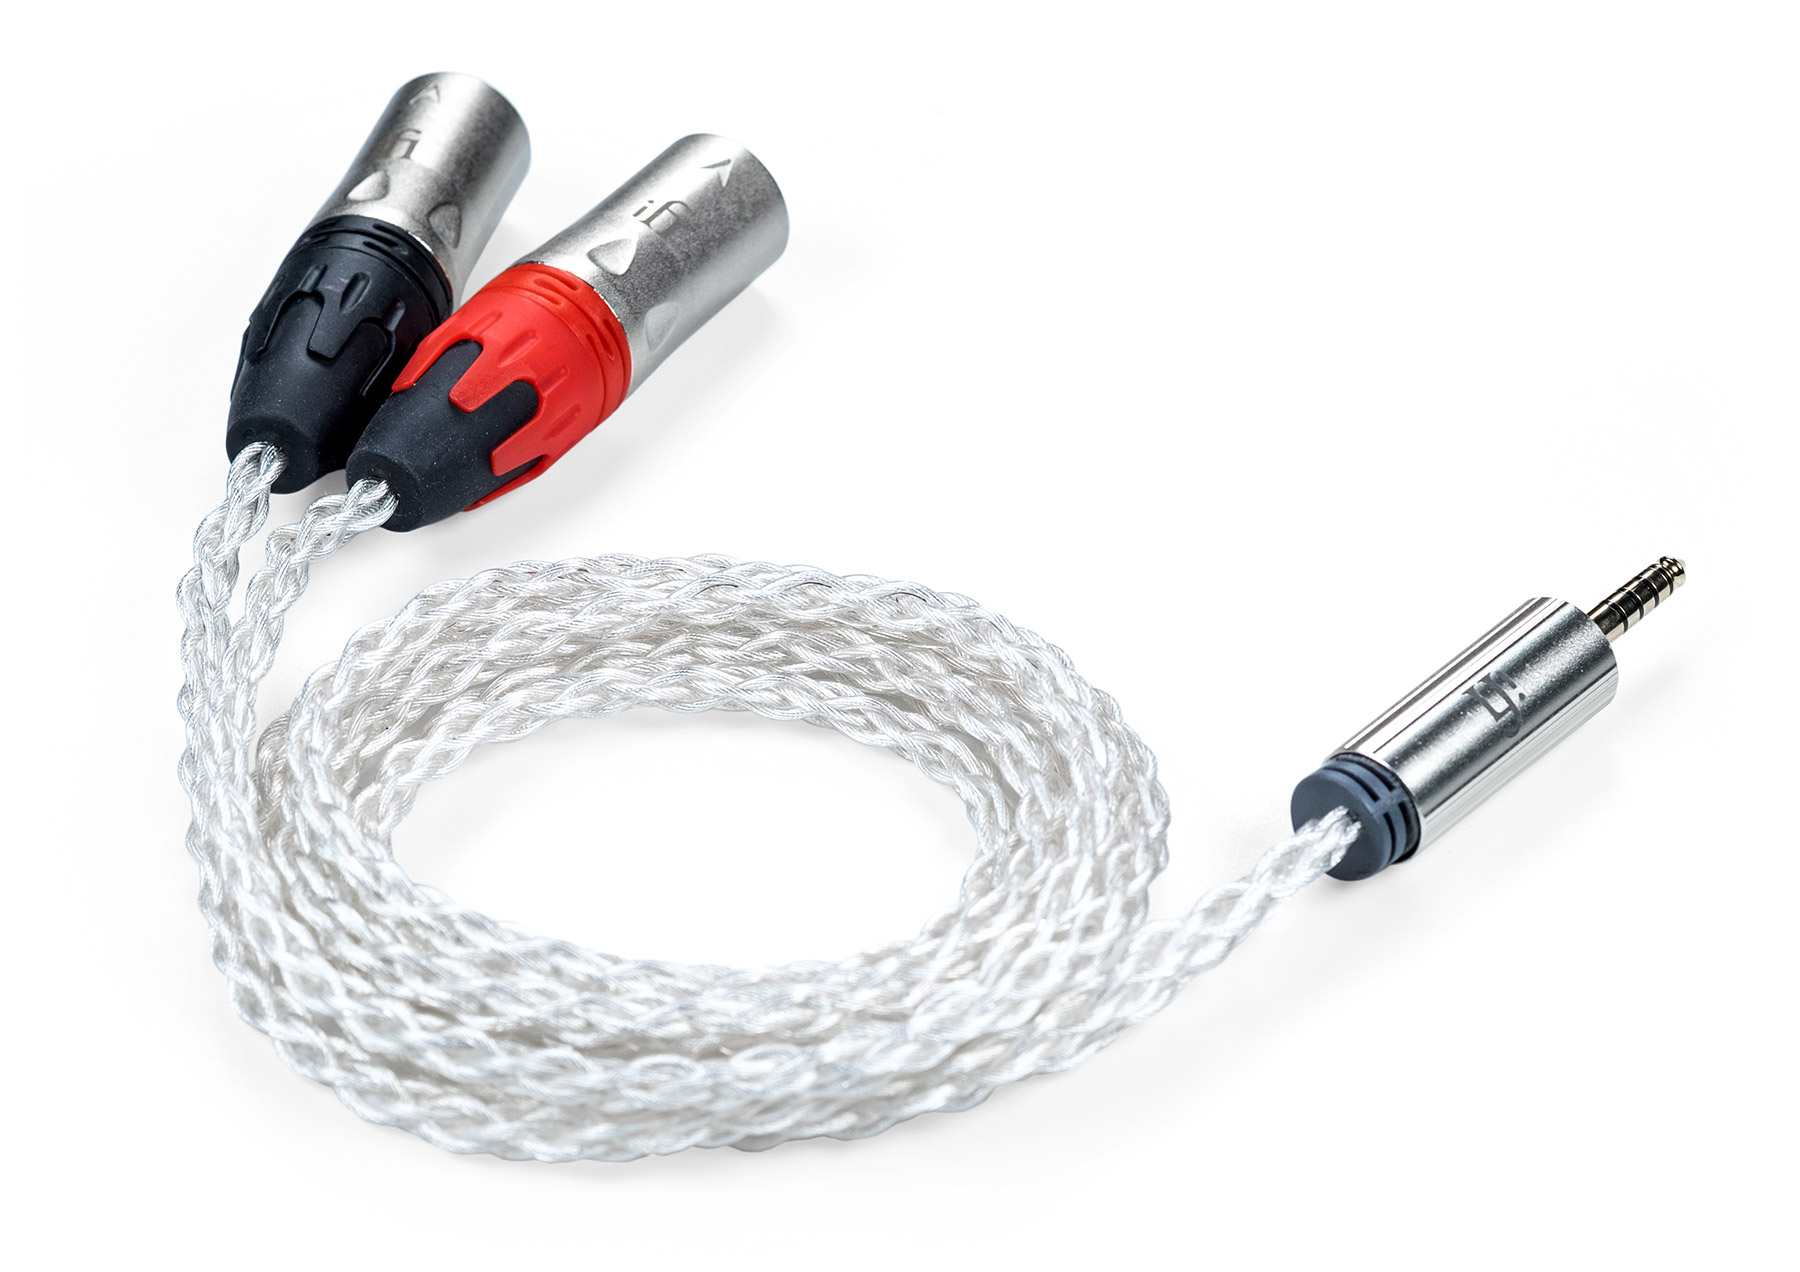 iFi 4.4mm to XLR cable